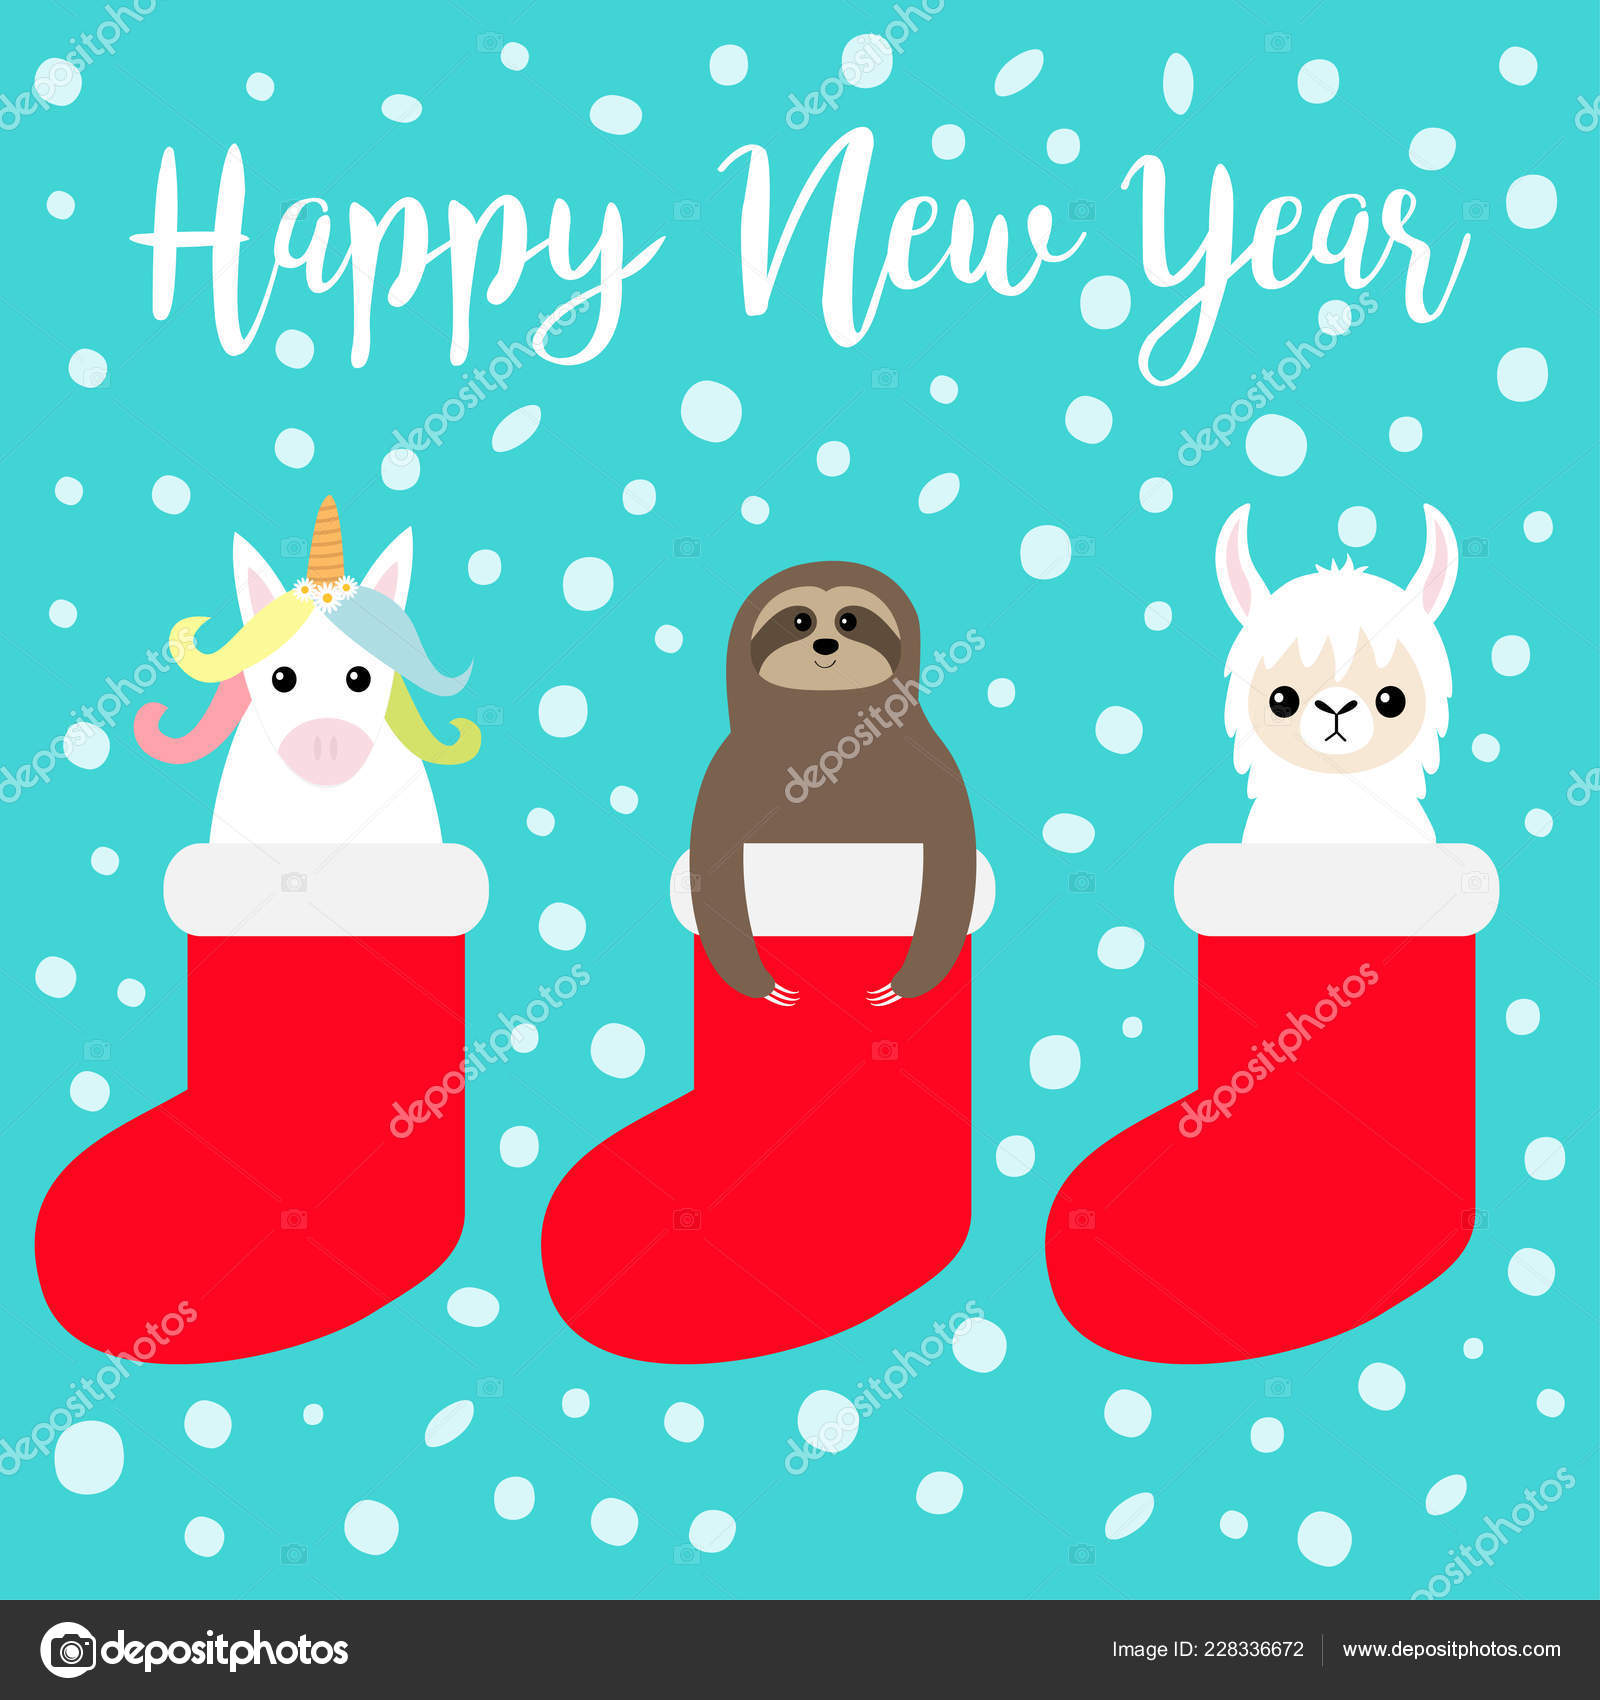 happy new year llama alpaca sloth unicorn in red sock snow flake merry christmas cute cartoon funny kawaii character t shirt greeting card